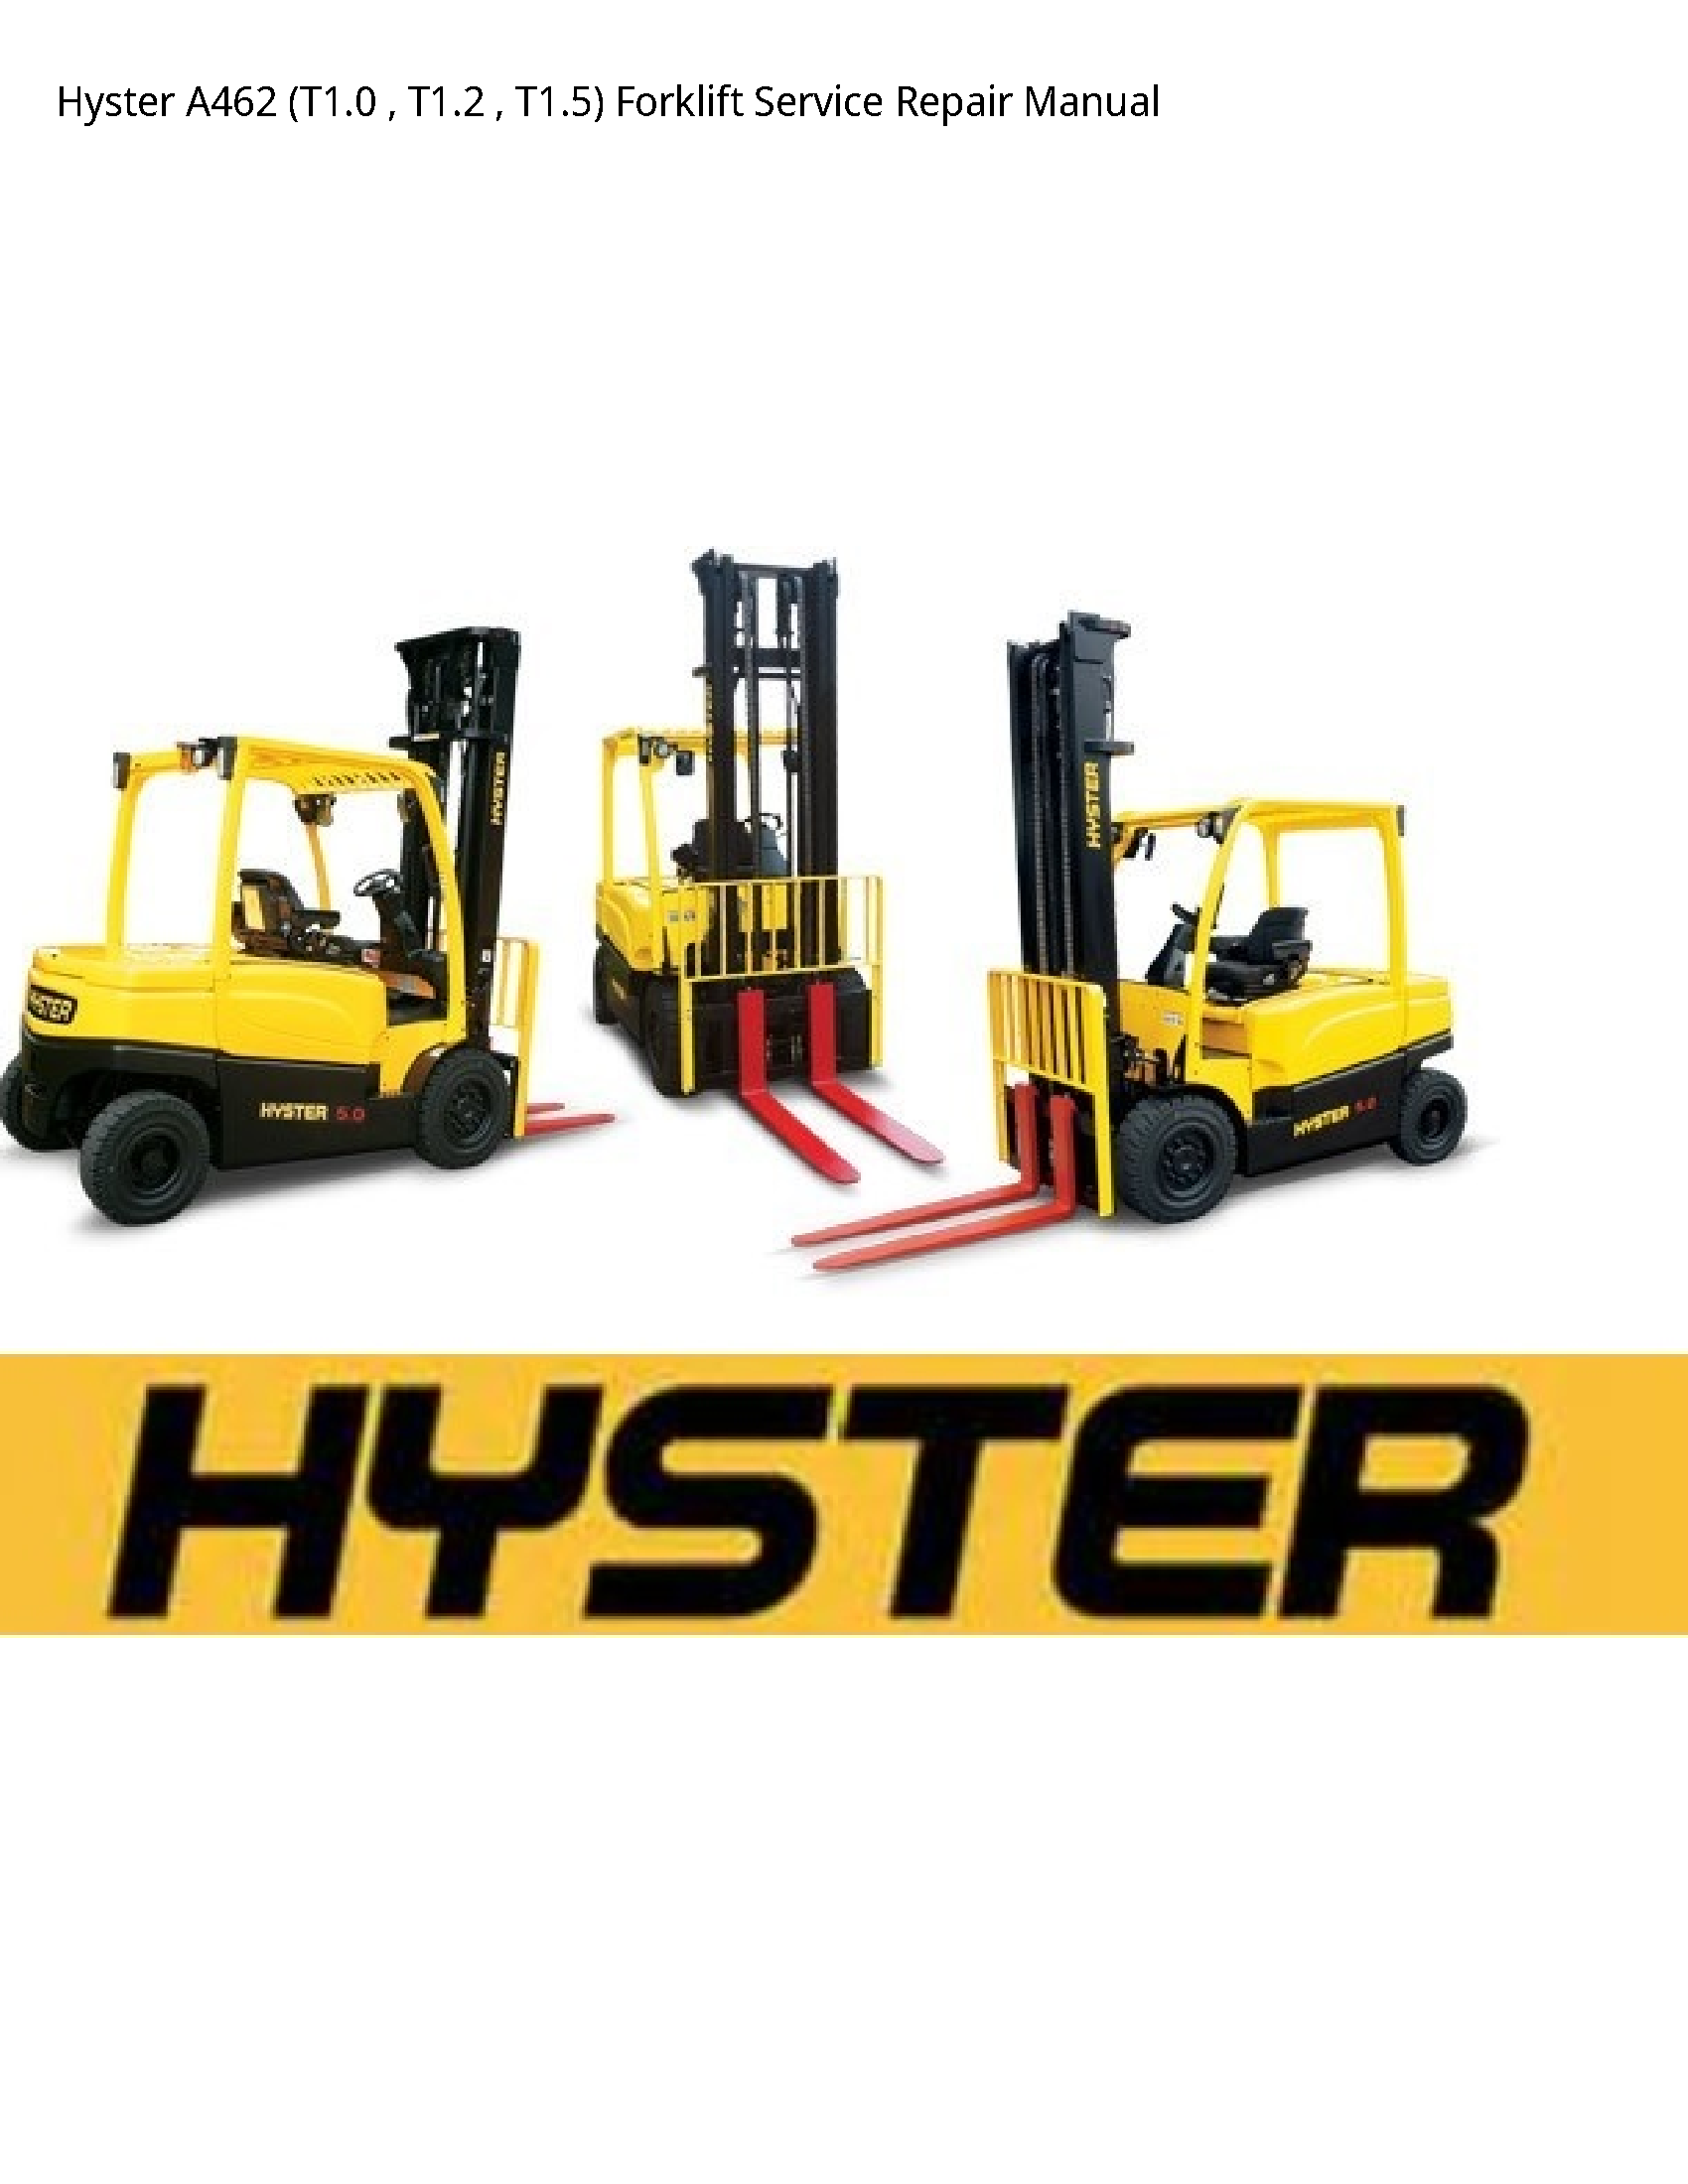 Hyster A462 Forklift manual